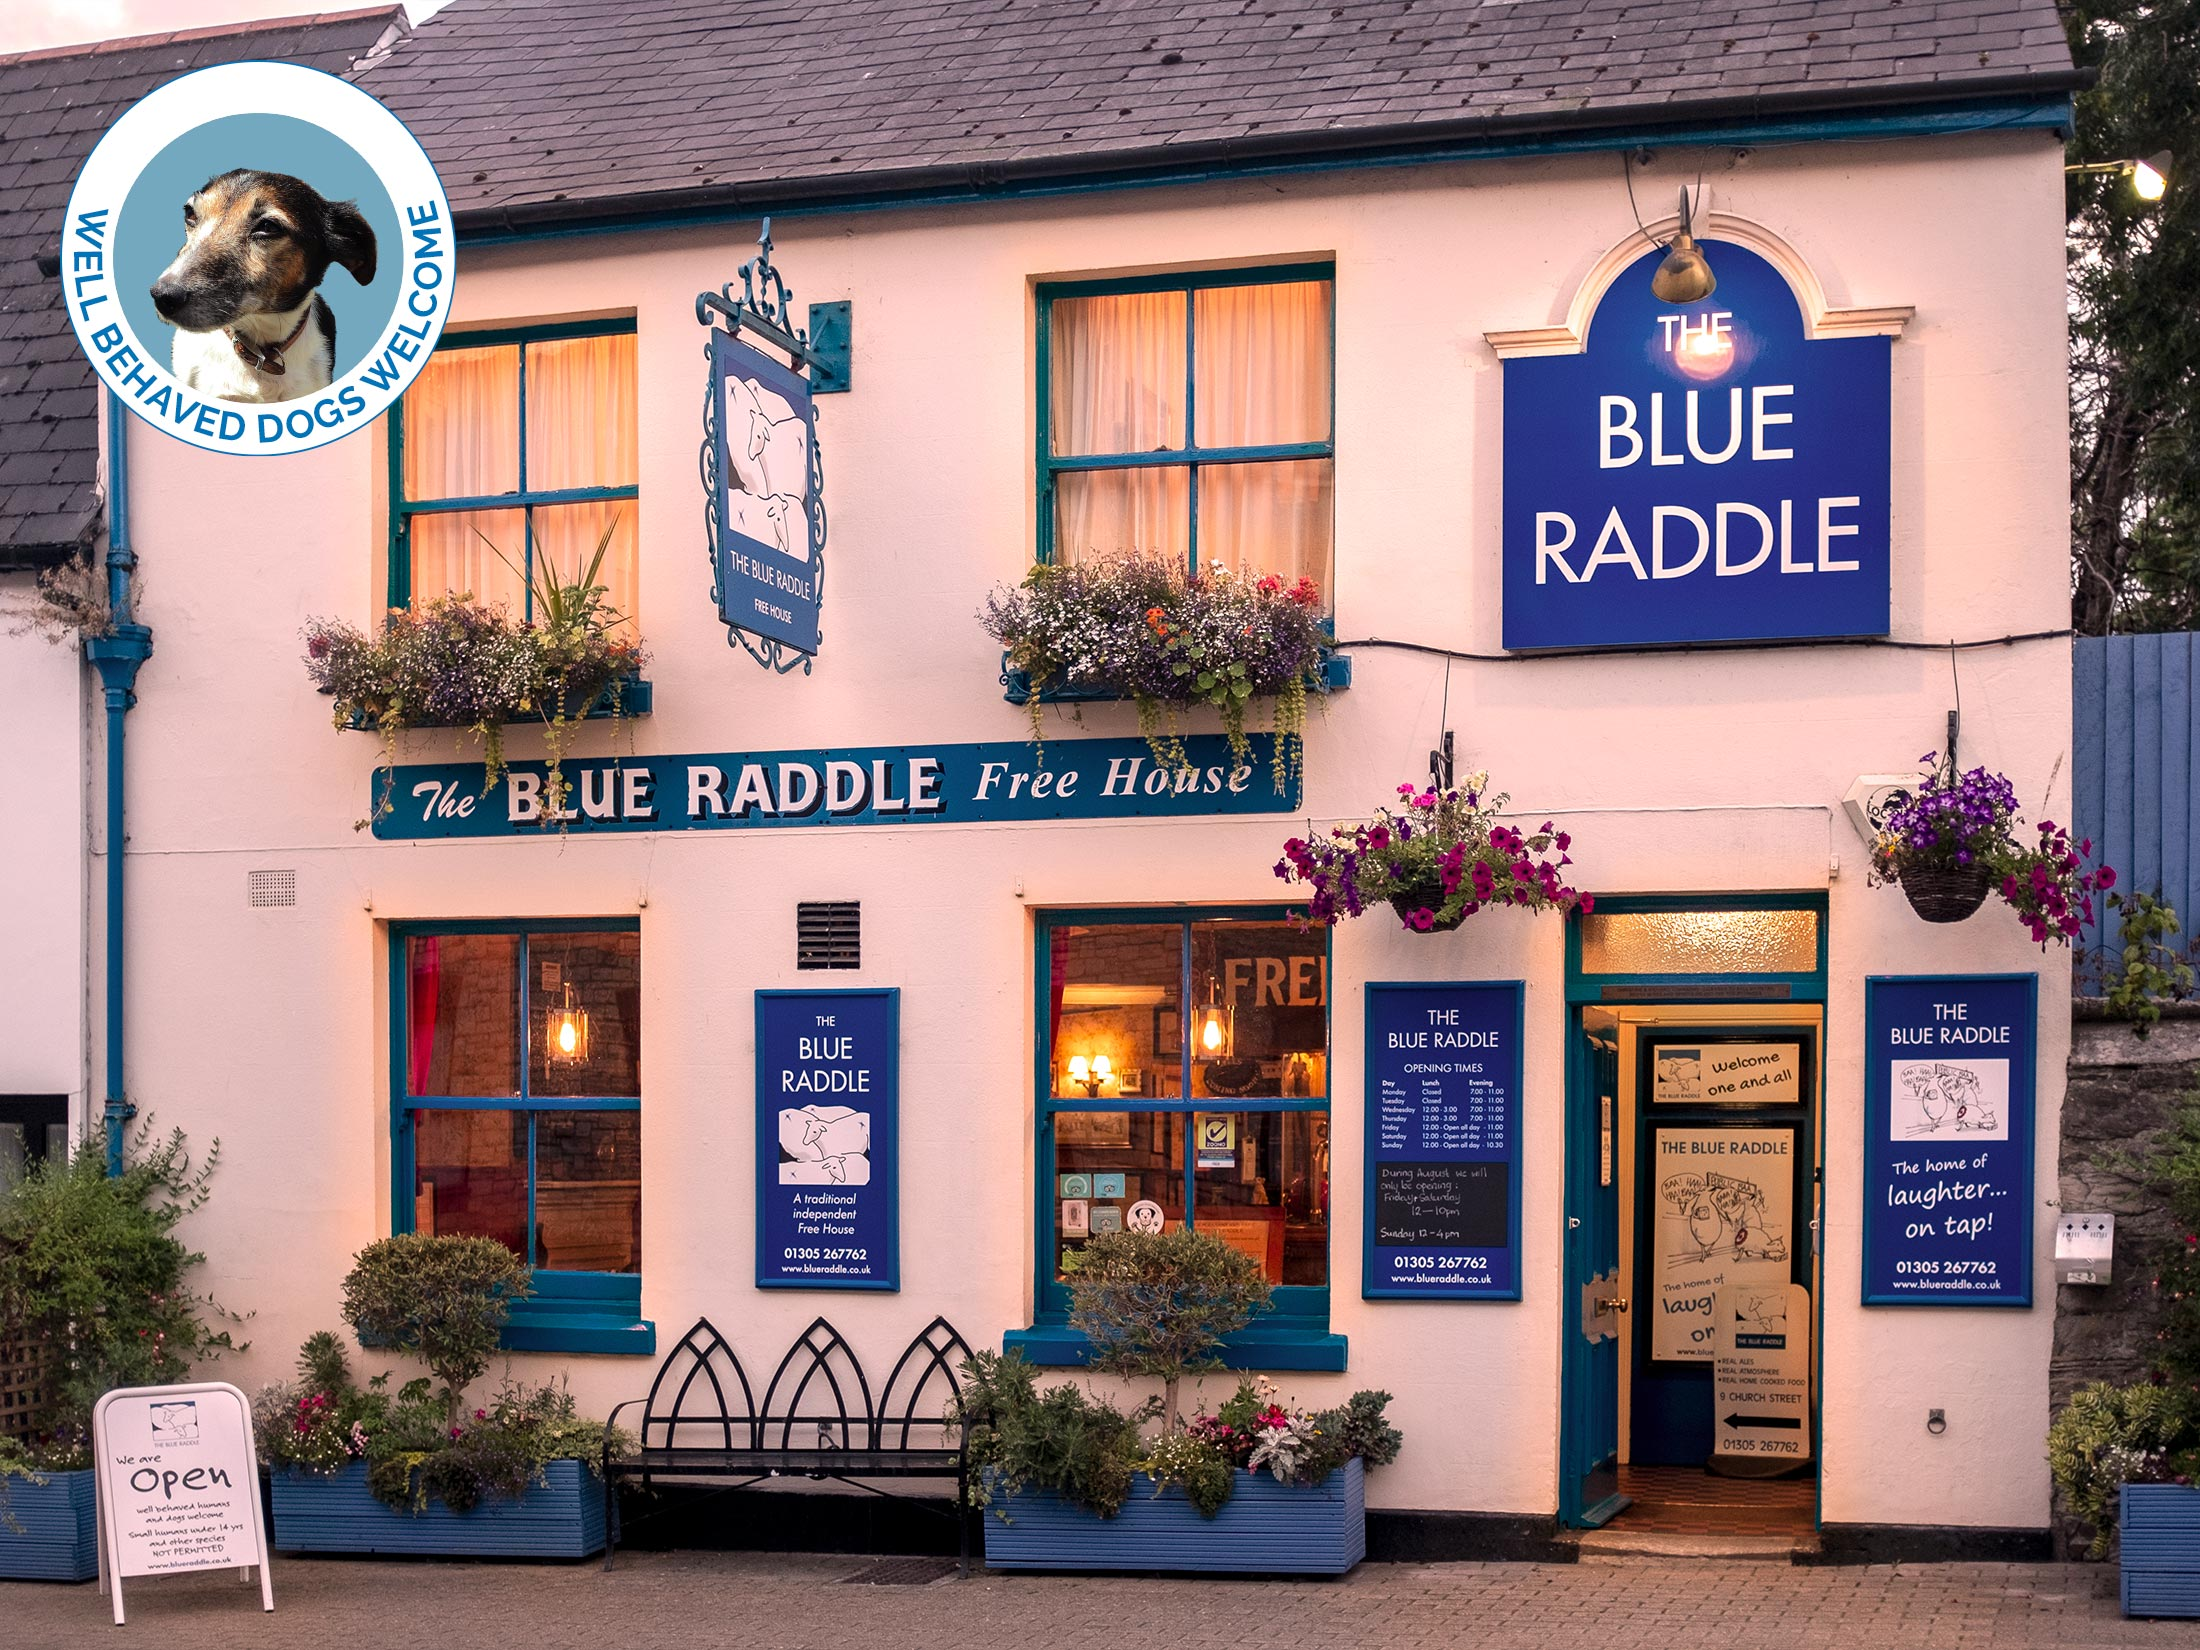 The Blue Raddle - Pub in Dorchester, Dorset - Outside view